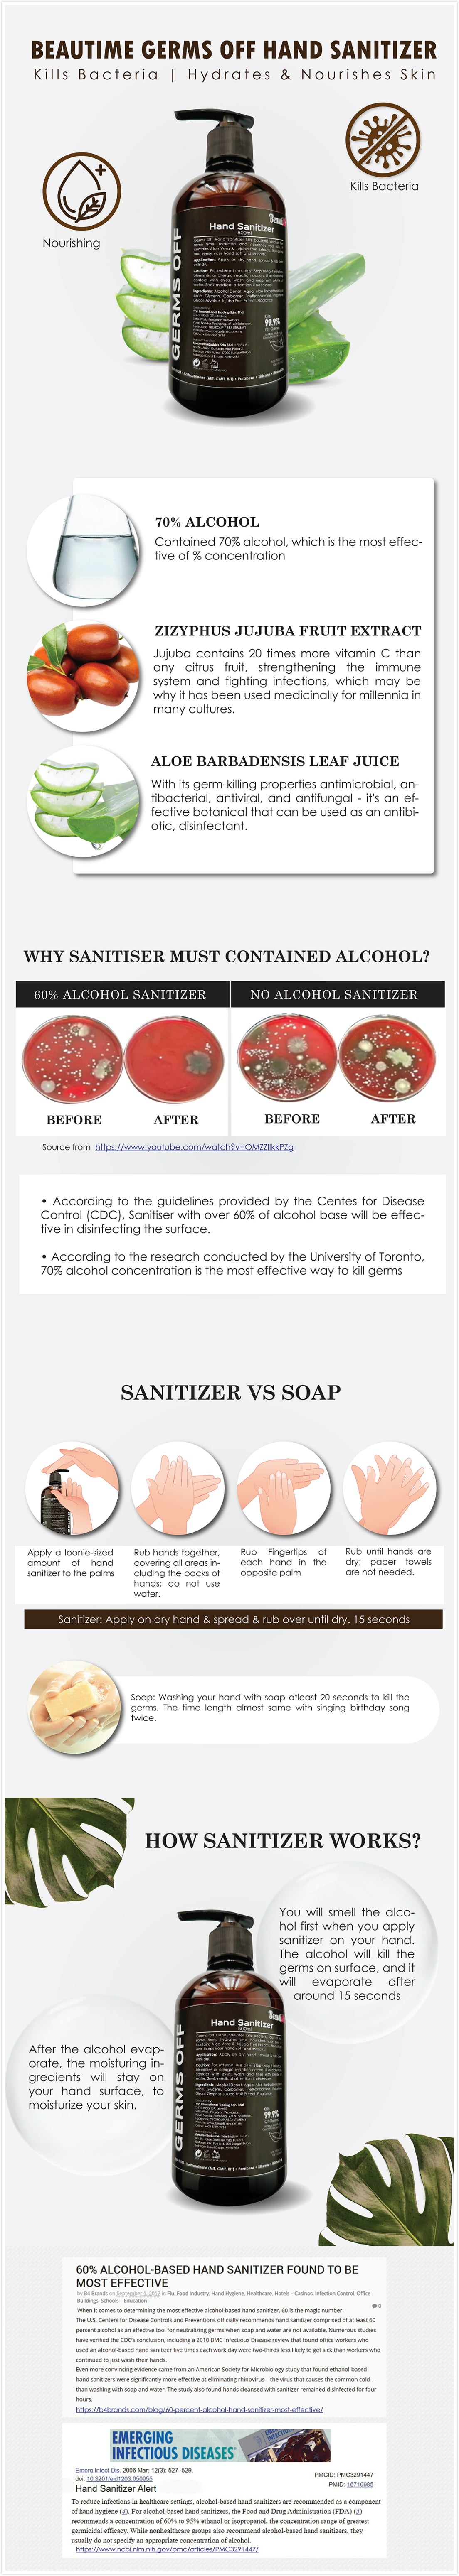 Beautime Germs Off Hand Sanitizer Info Banner